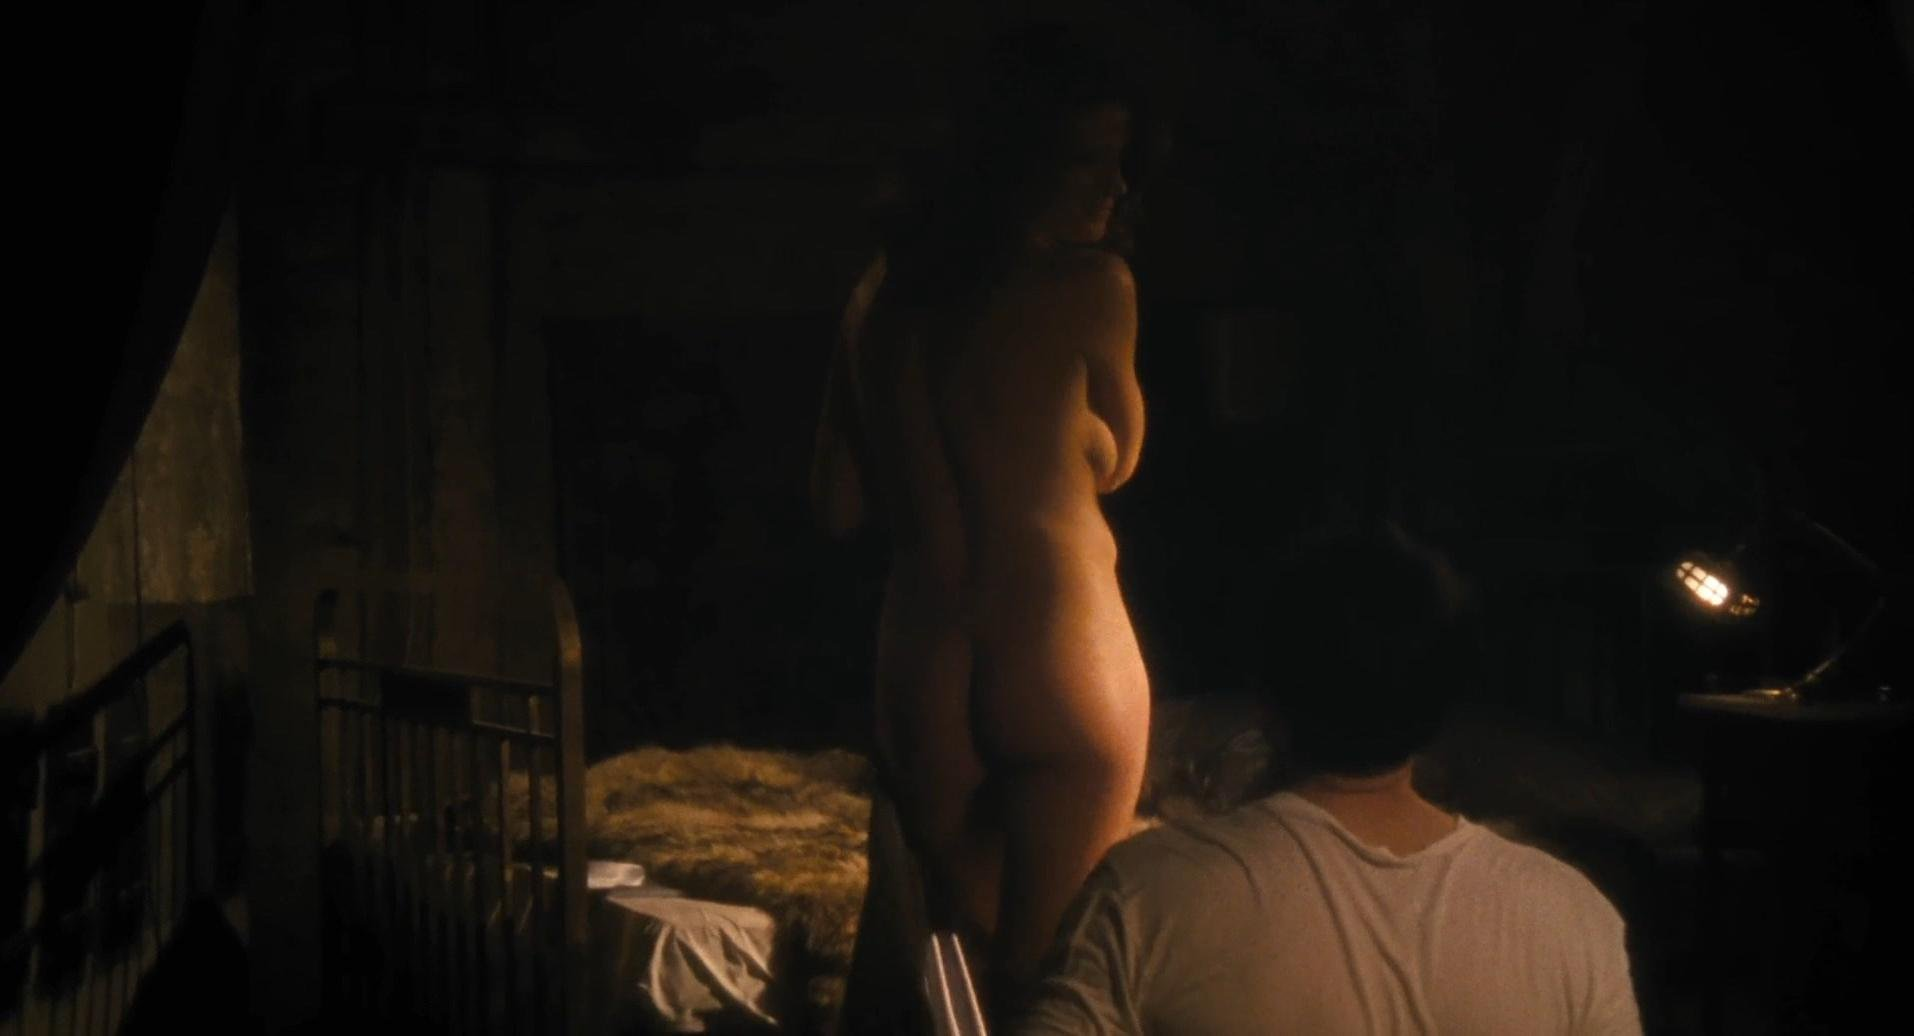 Marie Baumer nude, Dolores Chaplin sexy - The Counterfeiters (2007)